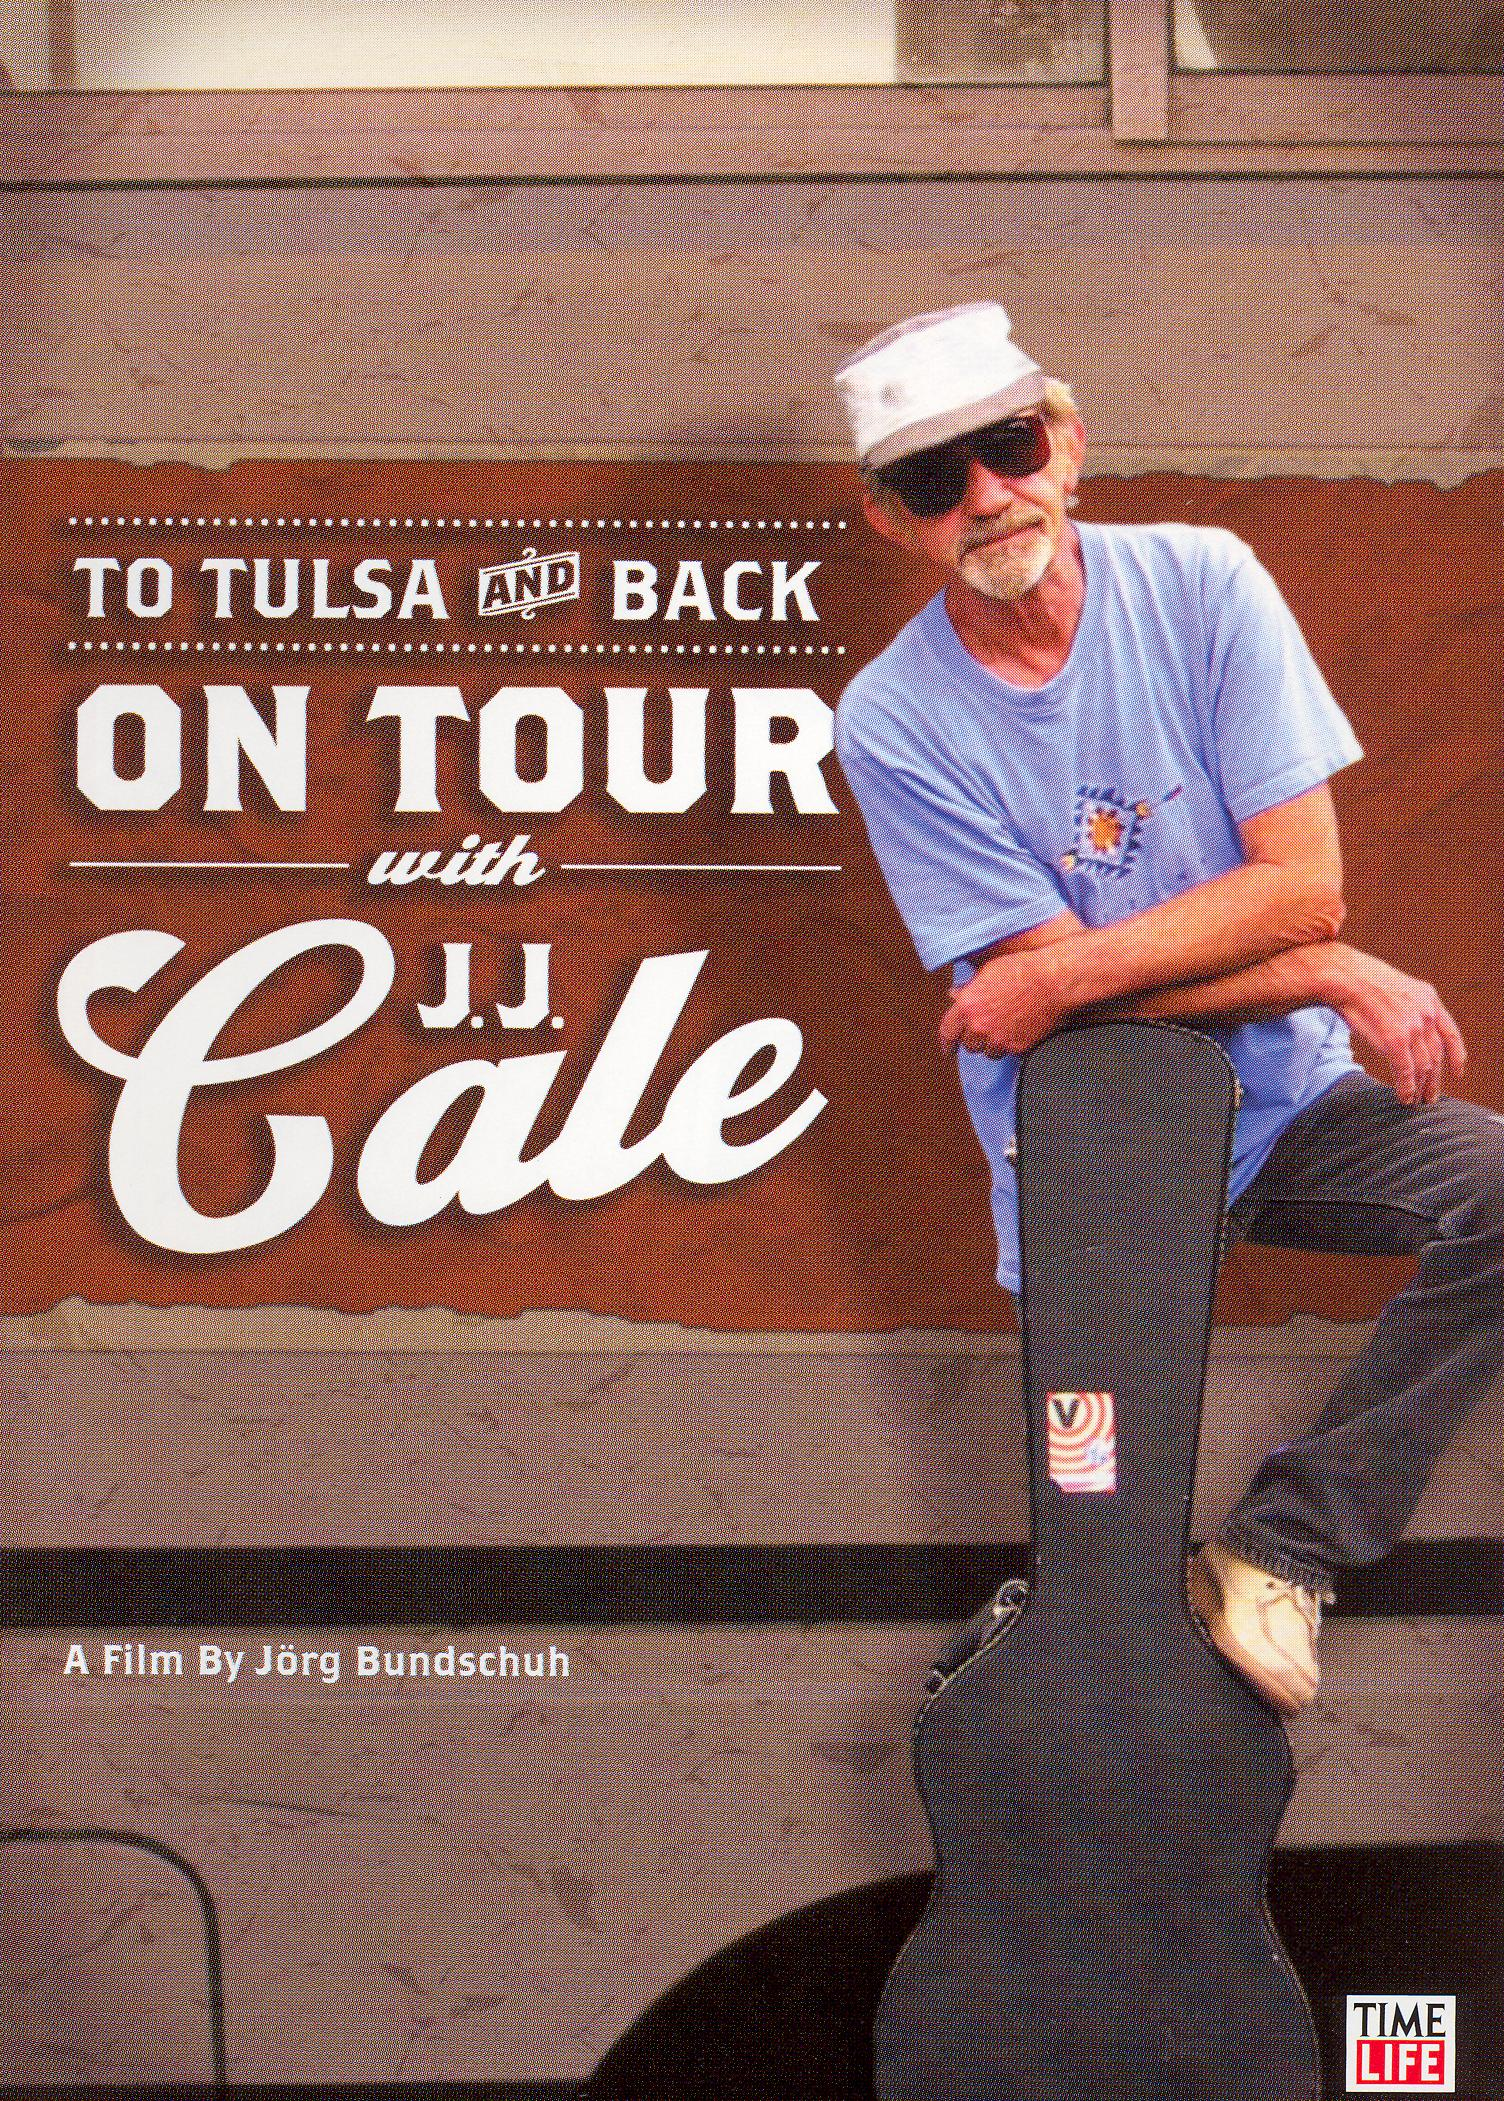 J.J. Cale: To Tulsa and Back